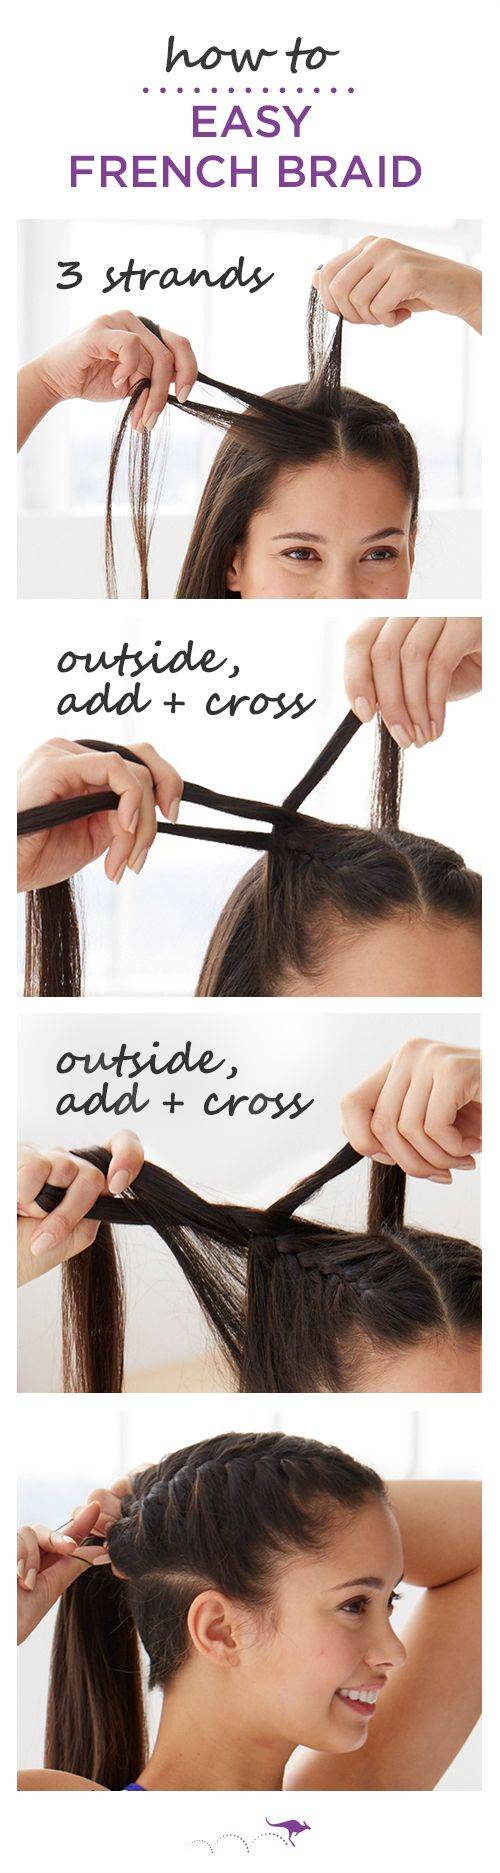 french braid tutorial for beginners